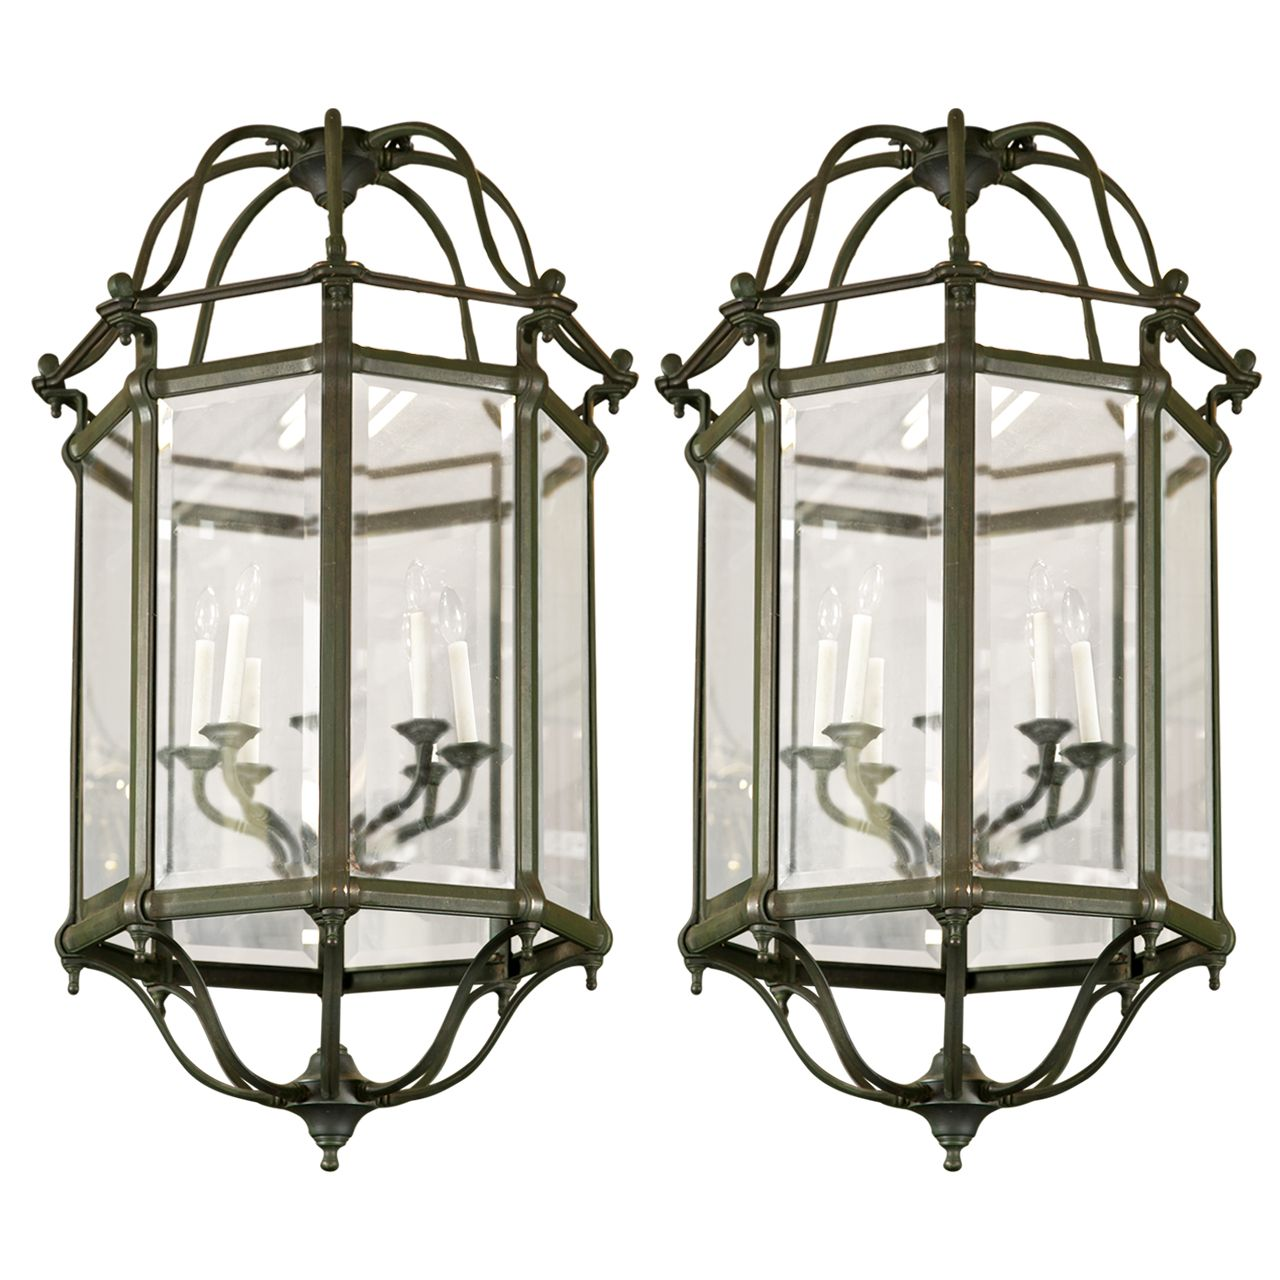 Vintage beveled glass lantern style chandeliers glass lanterns vintage beveled glass lantern style chandeliers arubaitofo Image collections